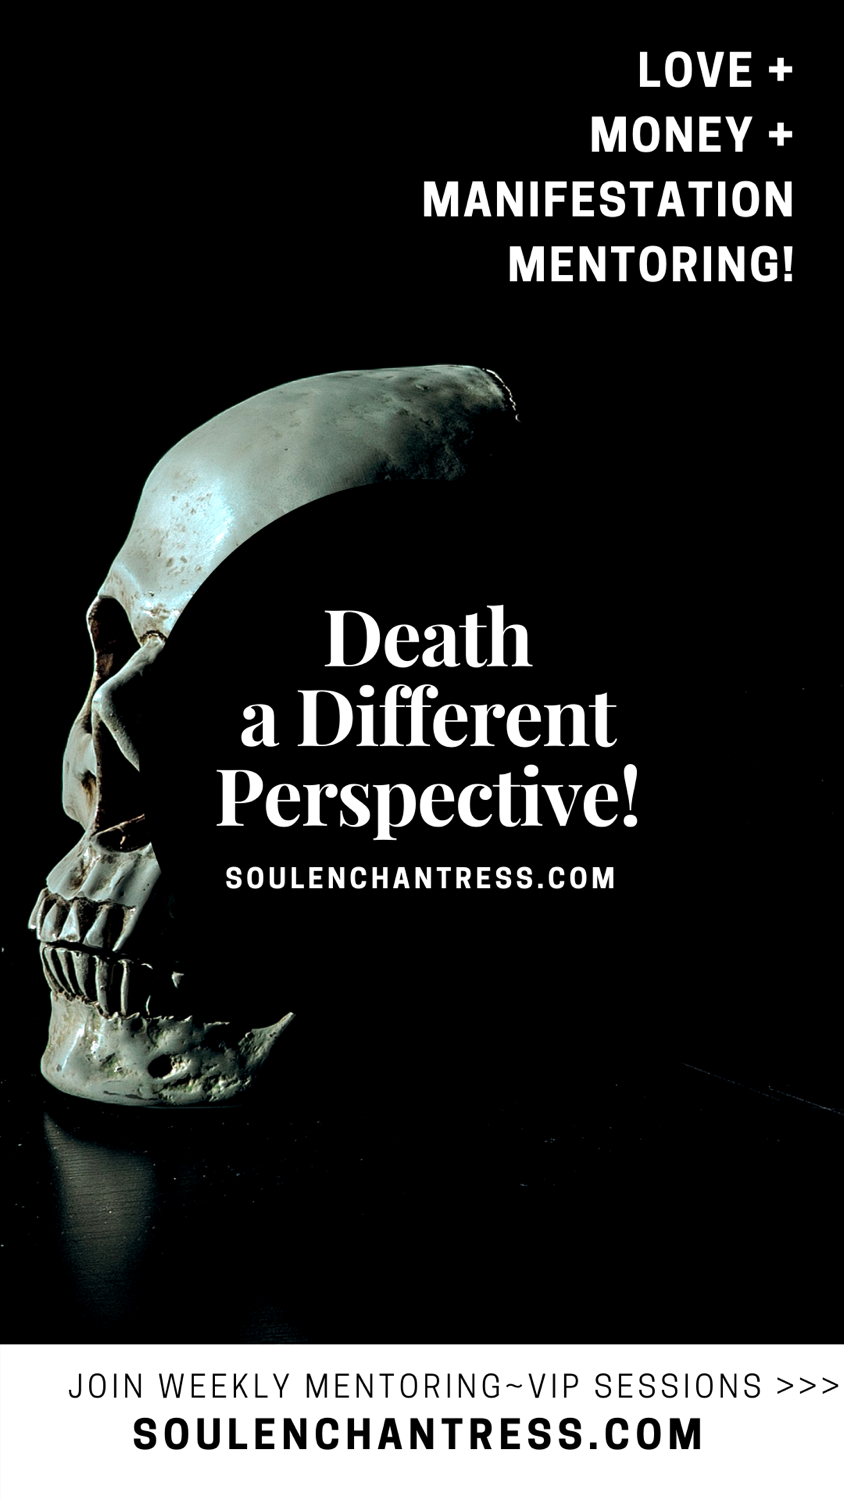 what happens after you die, what happens after death, soul enchantress